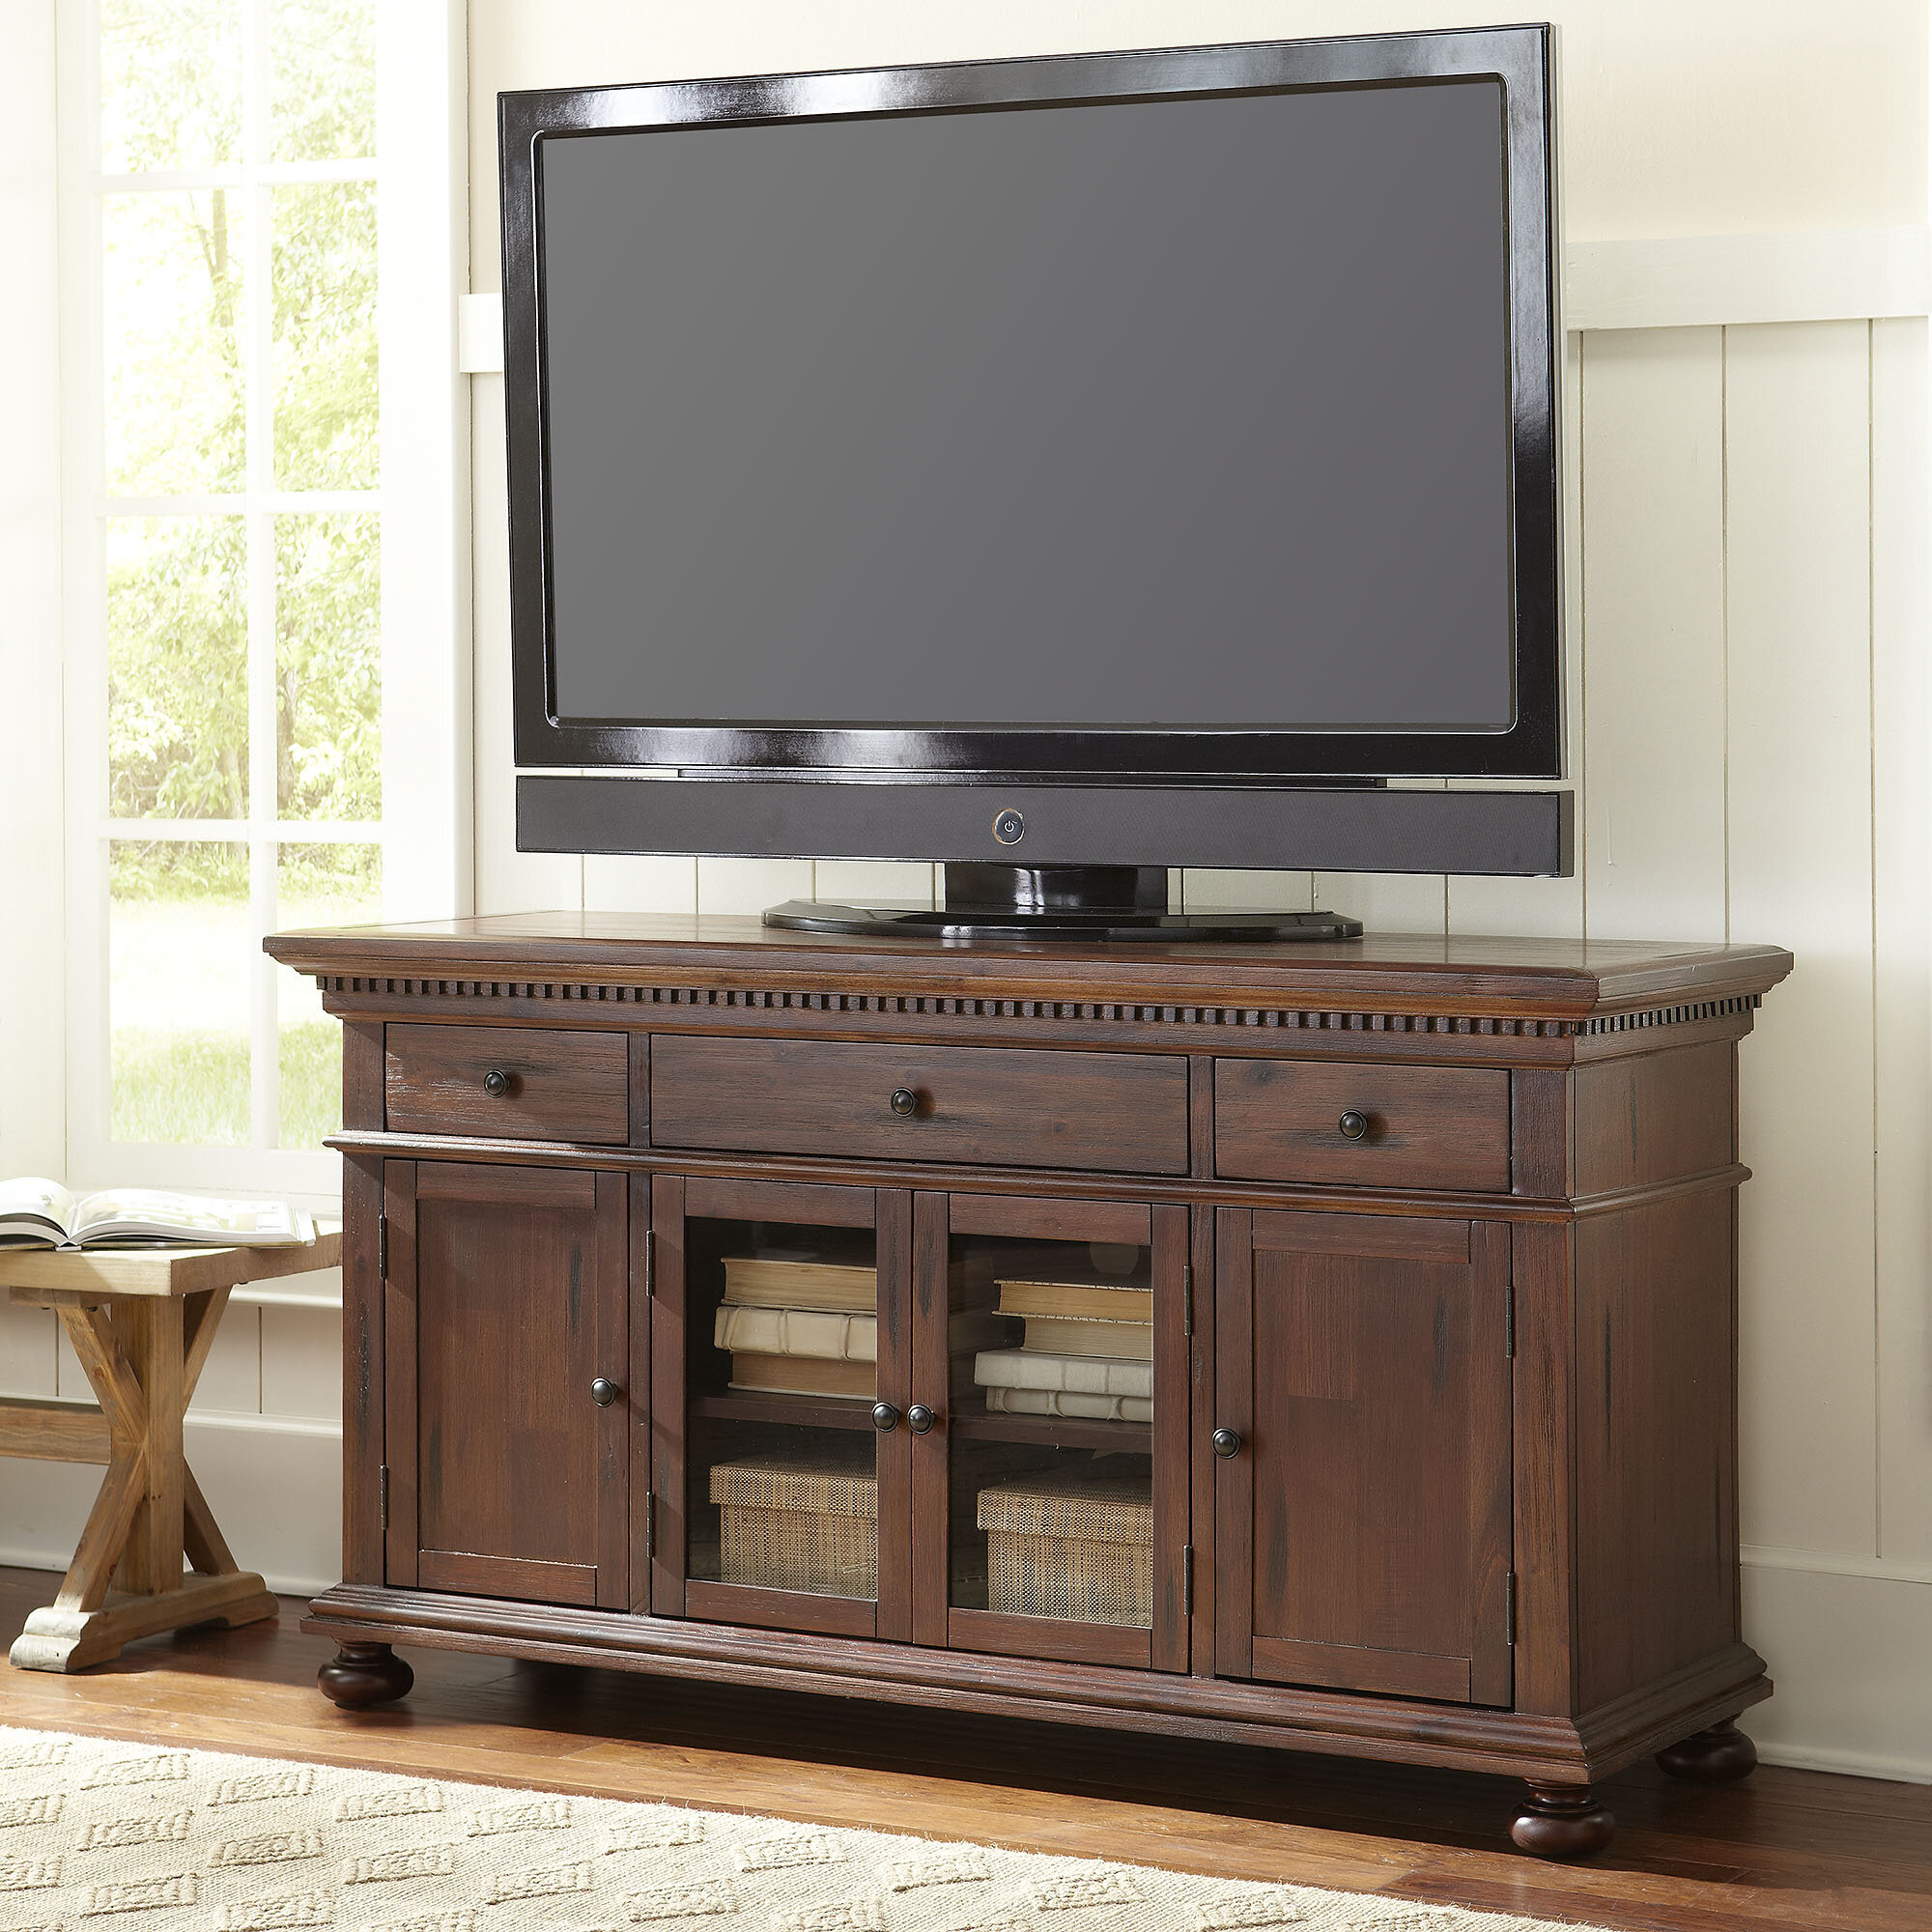 stand ideas of new small room shaker tv home decorating elegant bedrooms for living cottage simpli